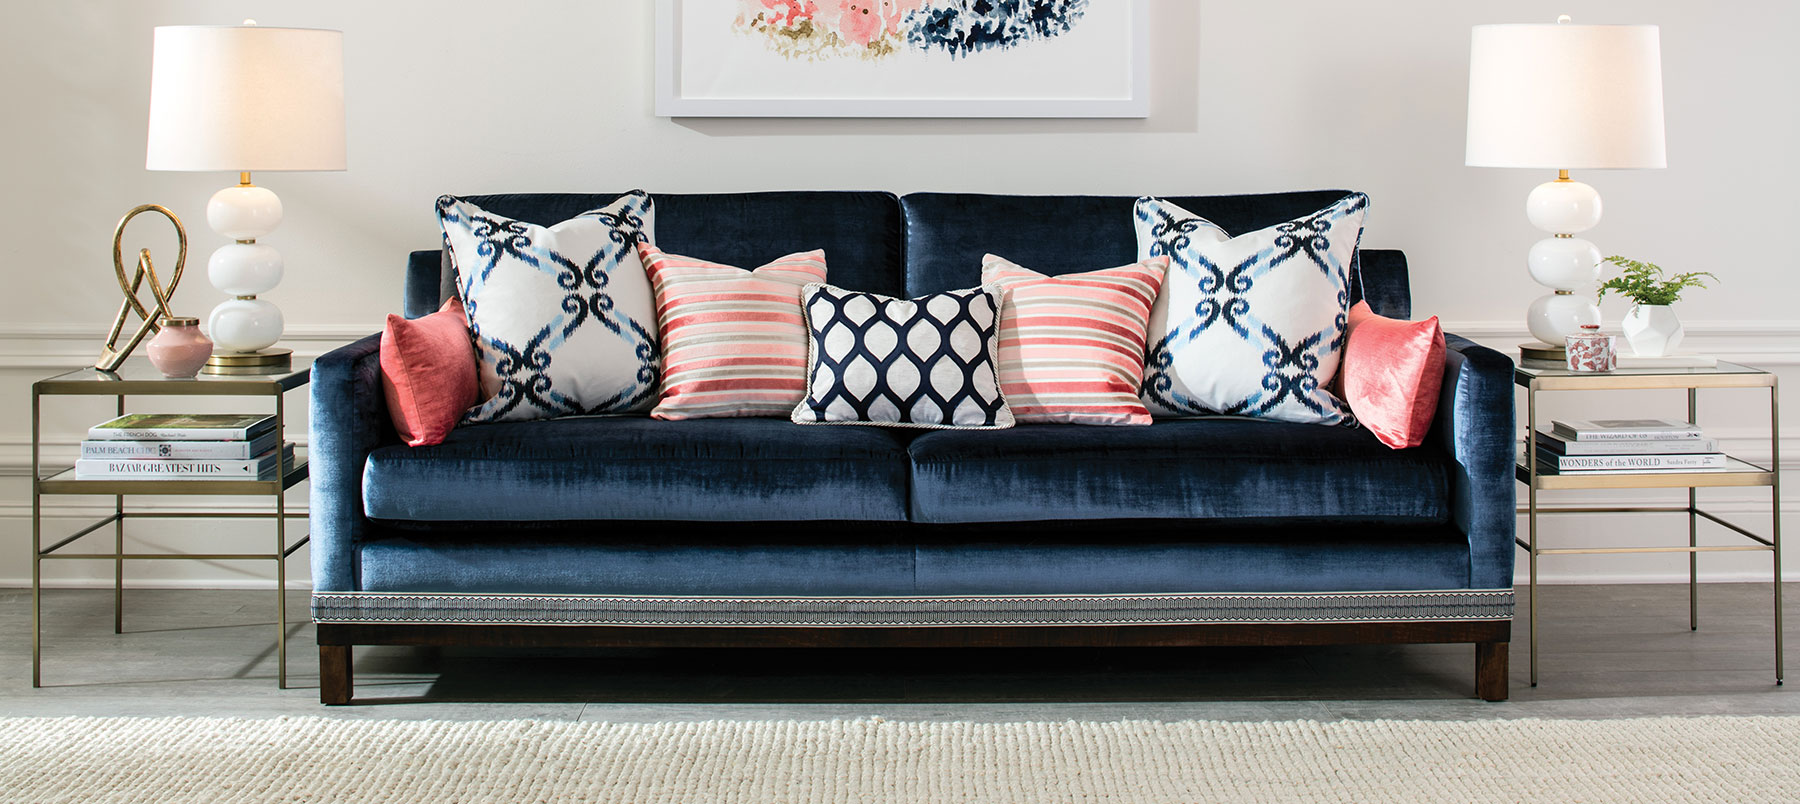 Taits_Interiors_Upholstery_Melbourne_Victoria_slide